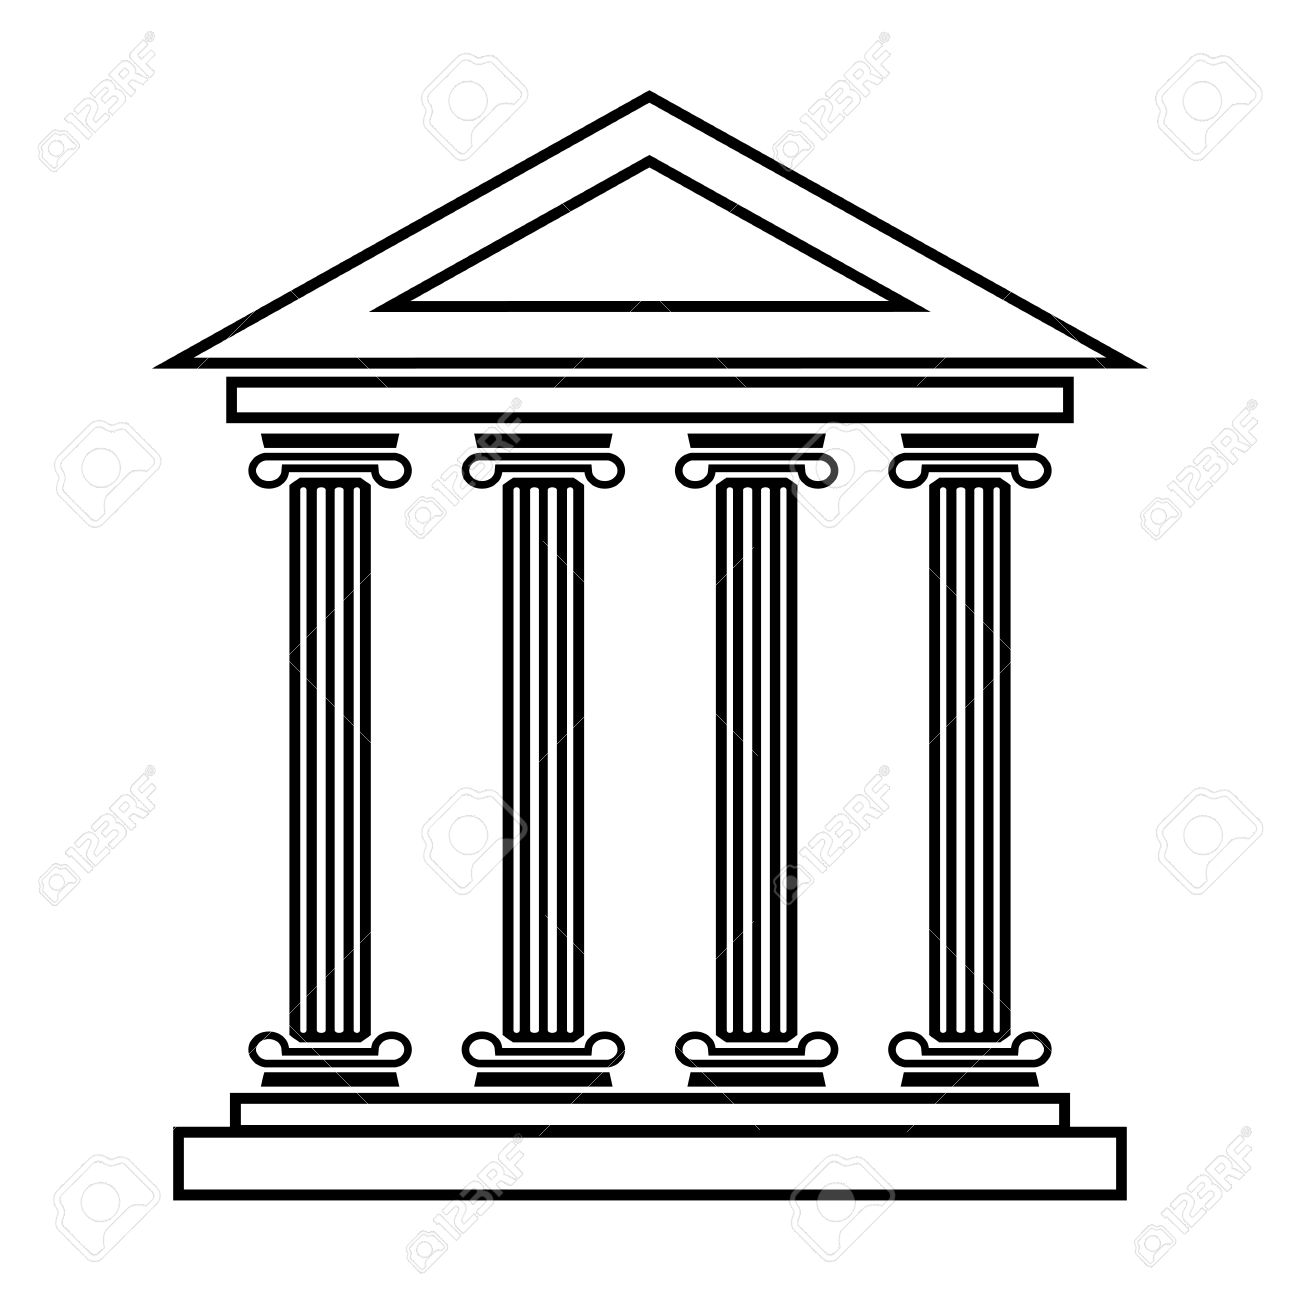 Historical Building Line Icon. Vector Illustration On White.